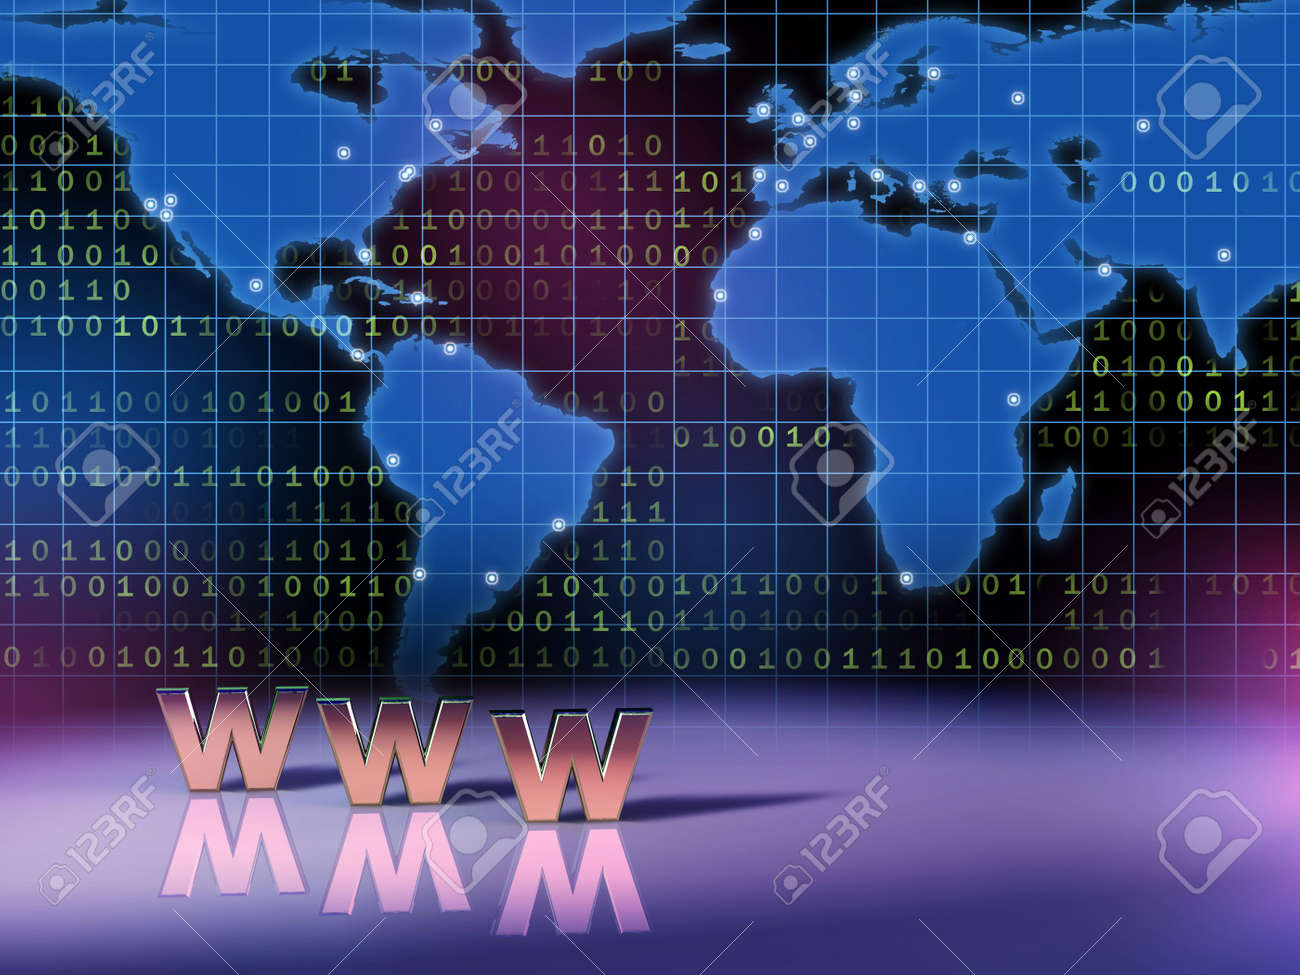 World wide web symbol in front of a world map. Digital illustration. Stock Illustration - 2520260